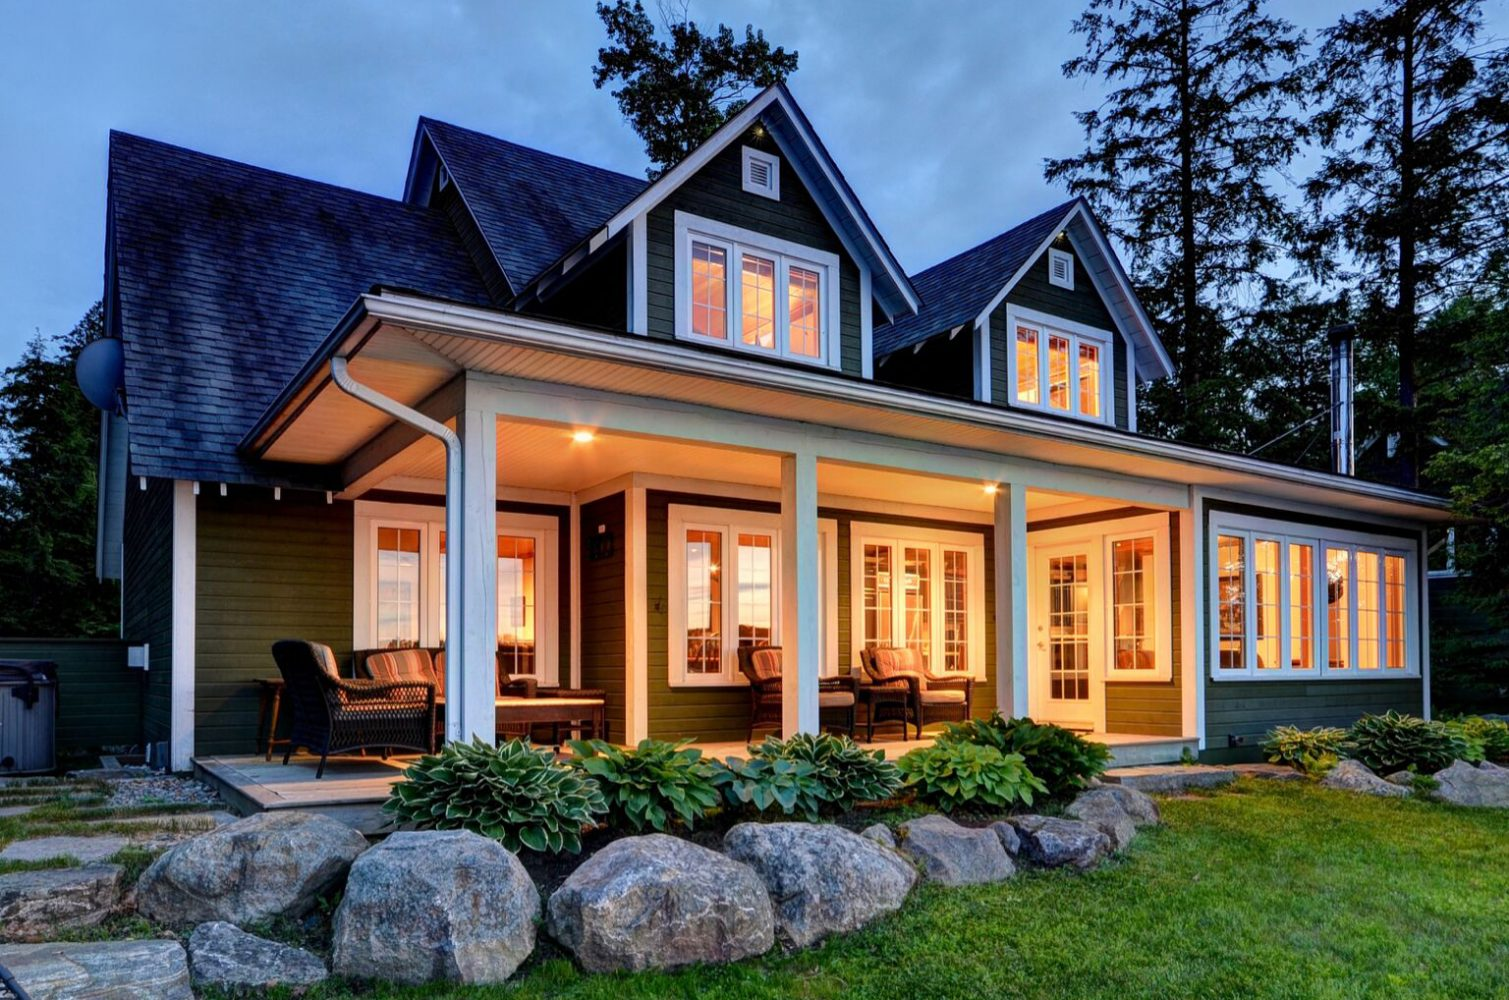 Traditional Muskoka cottage with lakeside porch by PattyMac